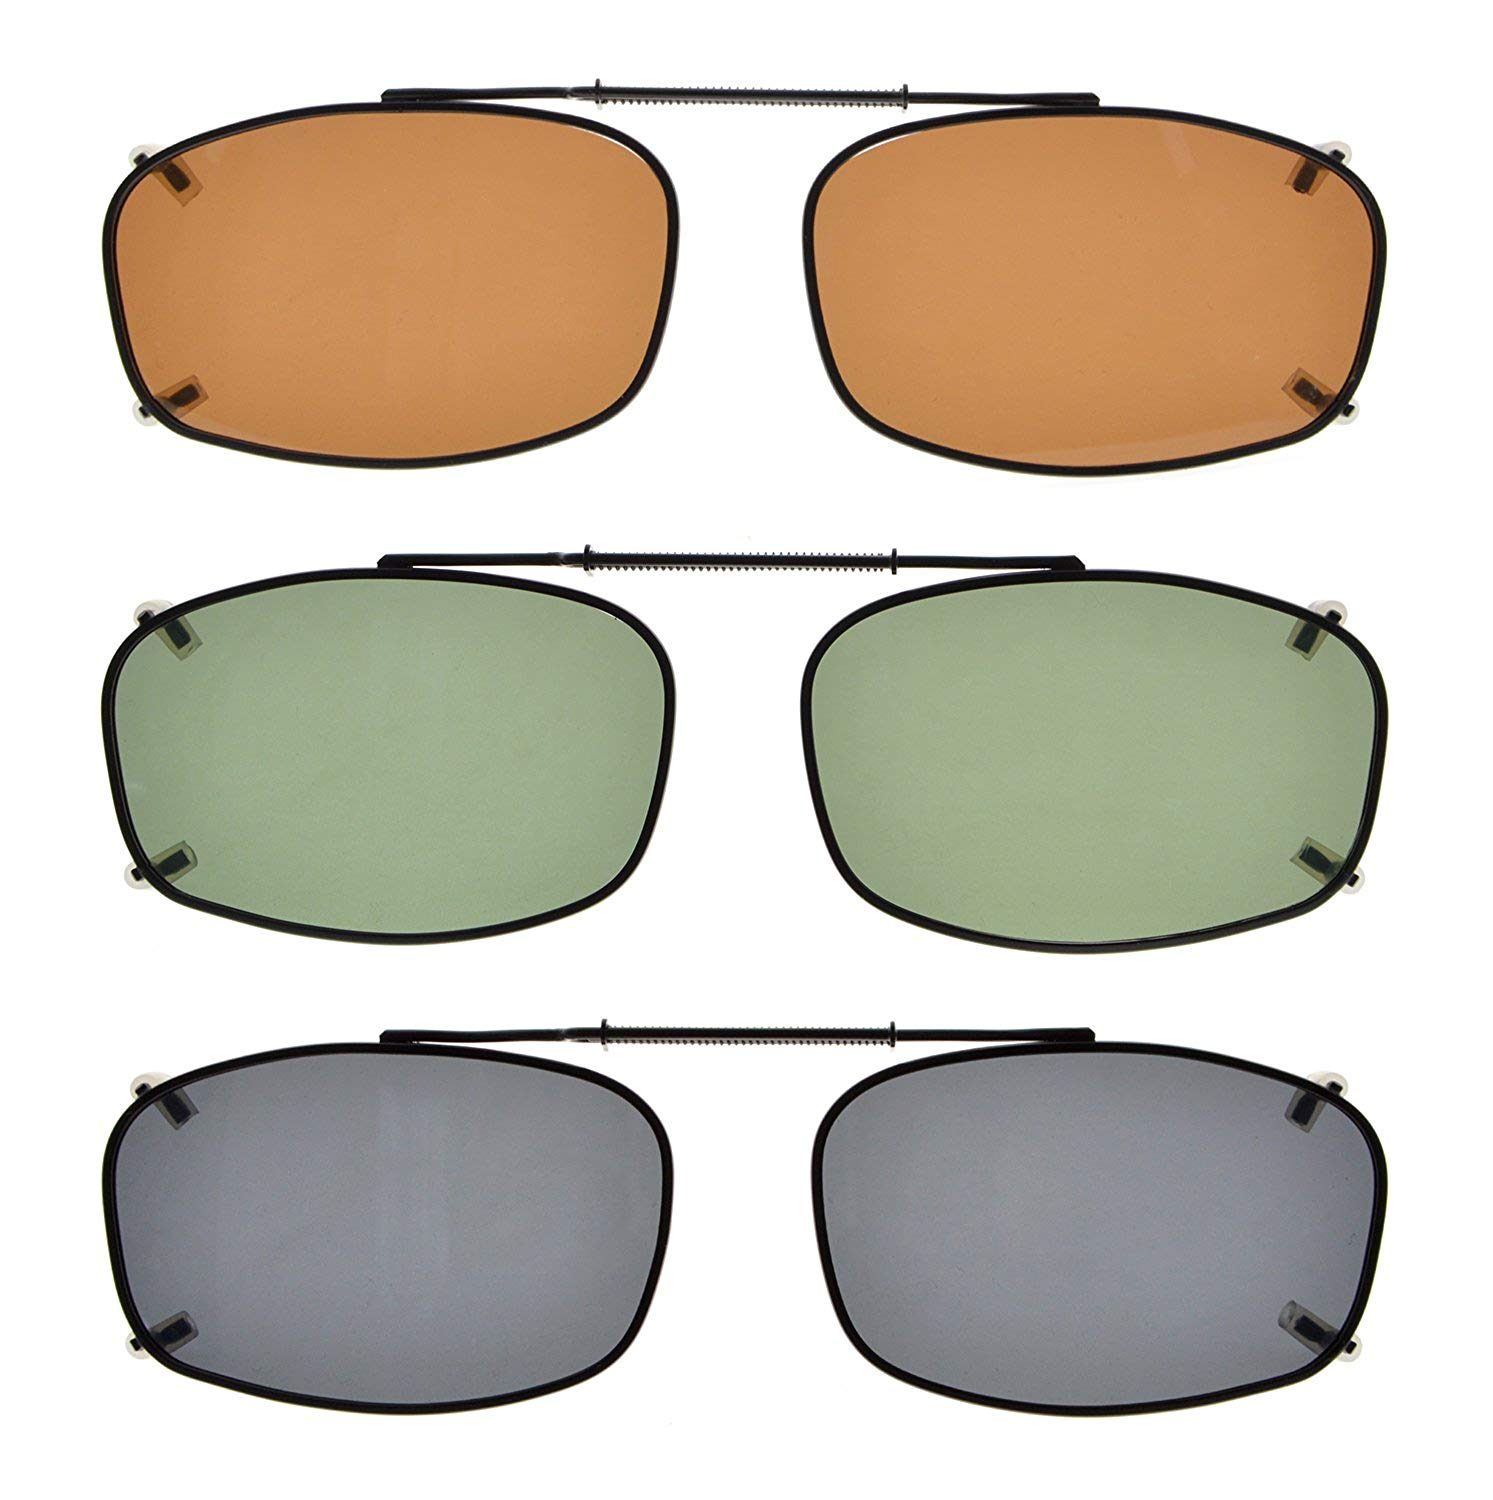 ca250f67f2 Get Quotations · Eyekepper Metal Frame Rim Polarized Lens Clip On Sunglasses  2 1 8